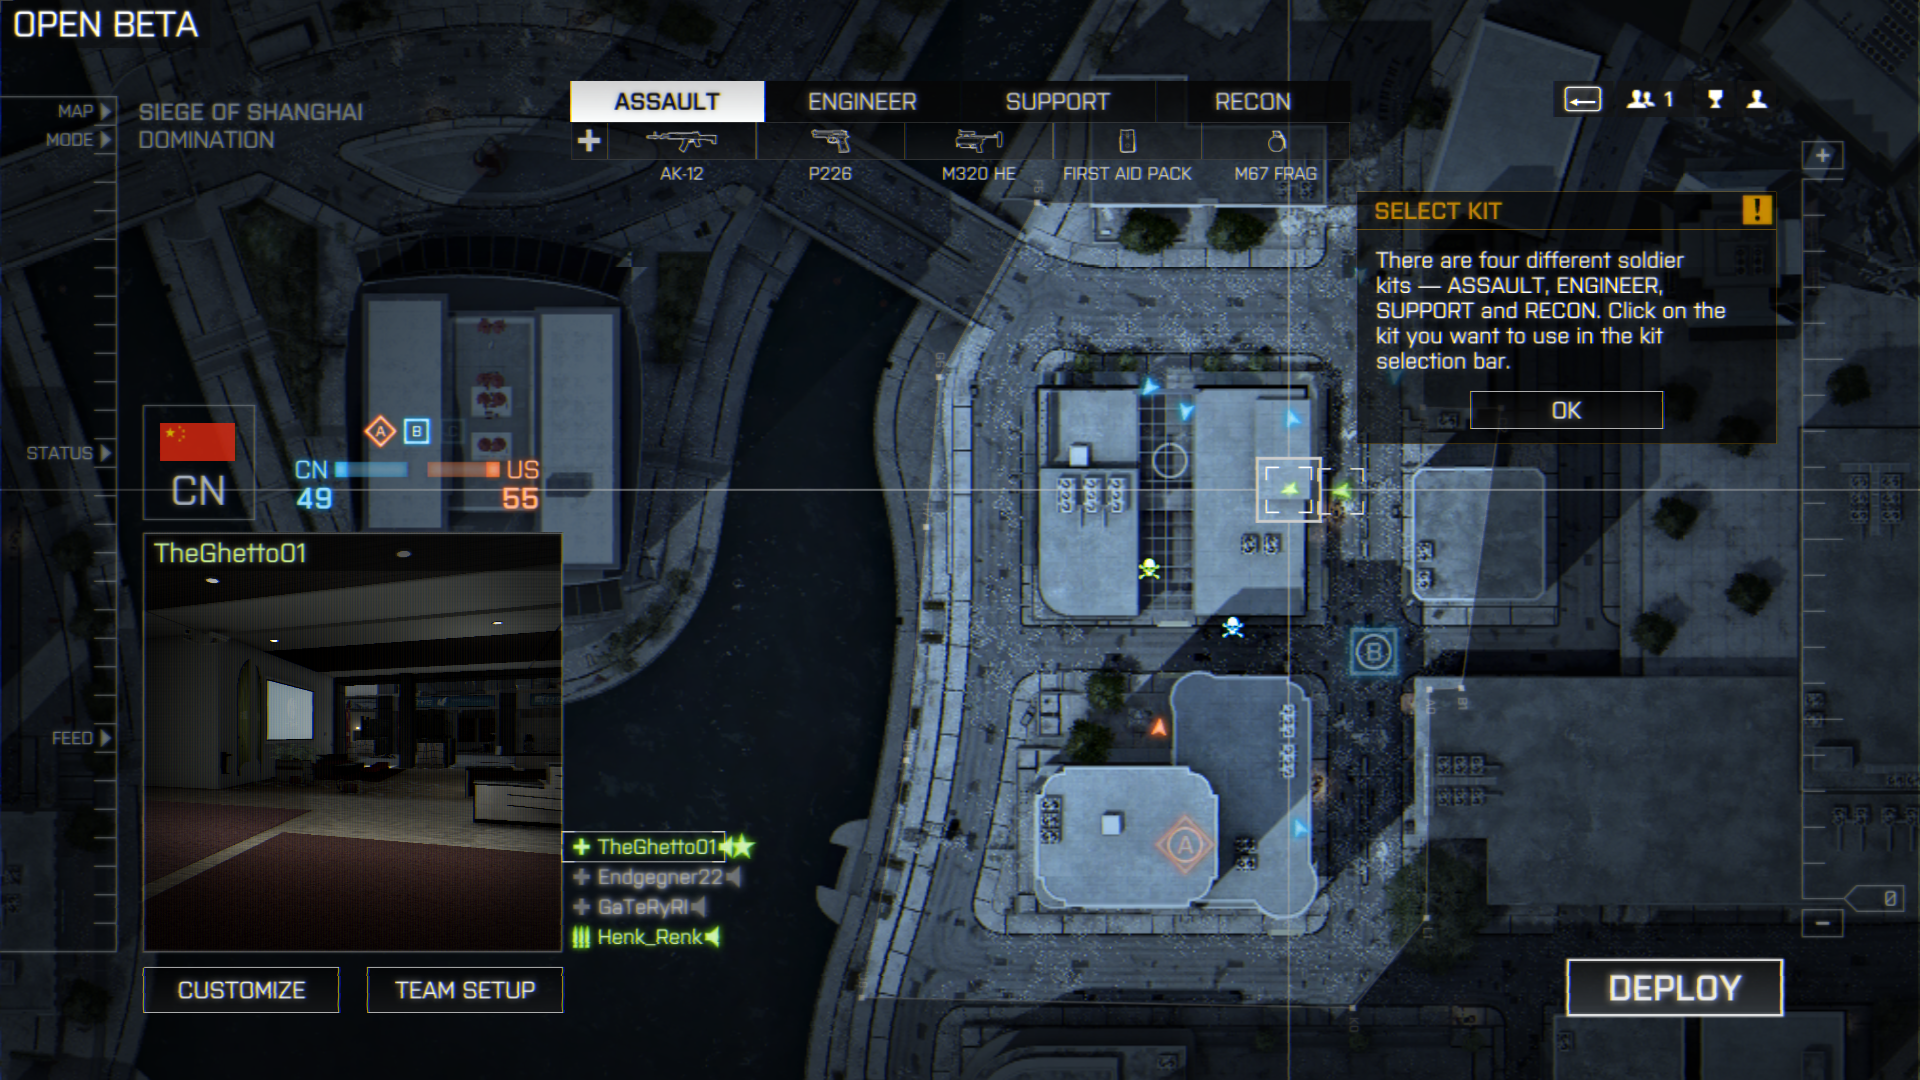 http://endgegner.fightercom.de/BF4_Screenshot/Battlefield4OpenBeta03.png